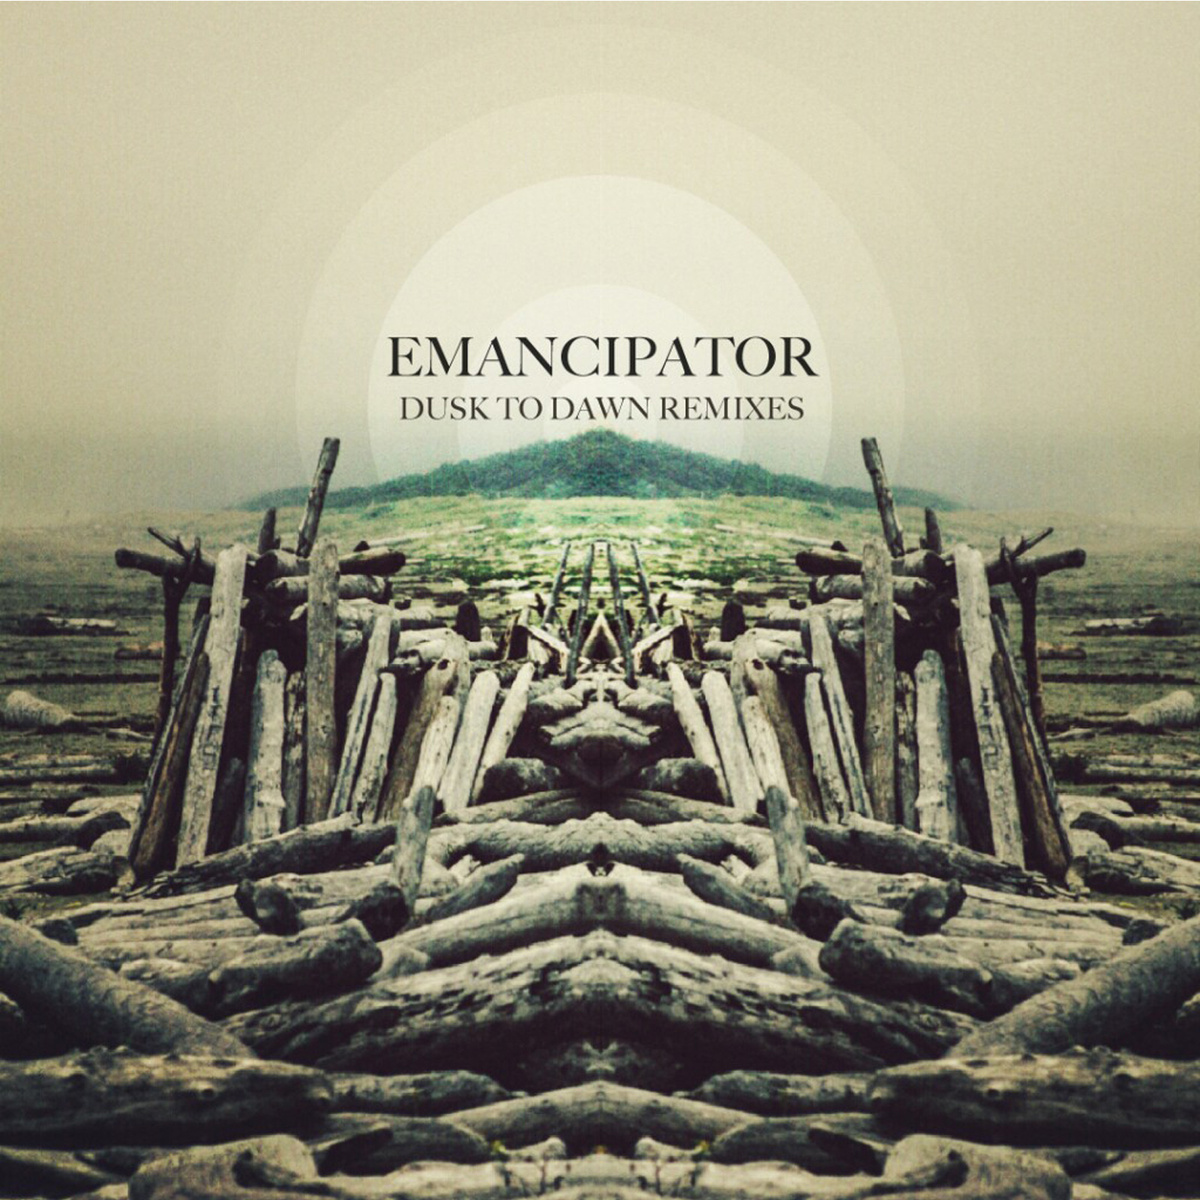 Emancipator. Dusk to Dawn Remixes.